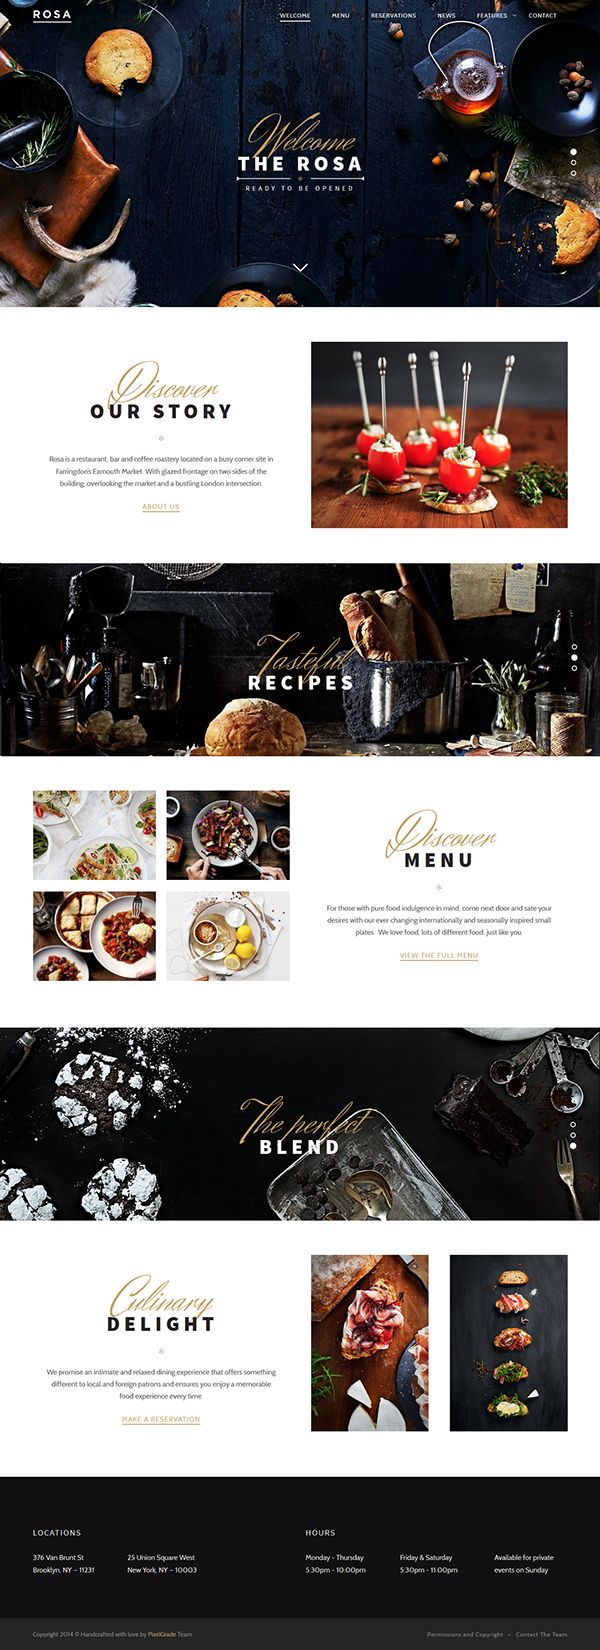 ROSA - An Exquisite Restaurant WordPress Theme by Themes Awards, via Behance | #webdesign #it #web #design #layout #userinterface #website #webdesign repinned by www.BlickeDeeler.de | Visit our website www.blickedeeler.de/leistungen/webdesign